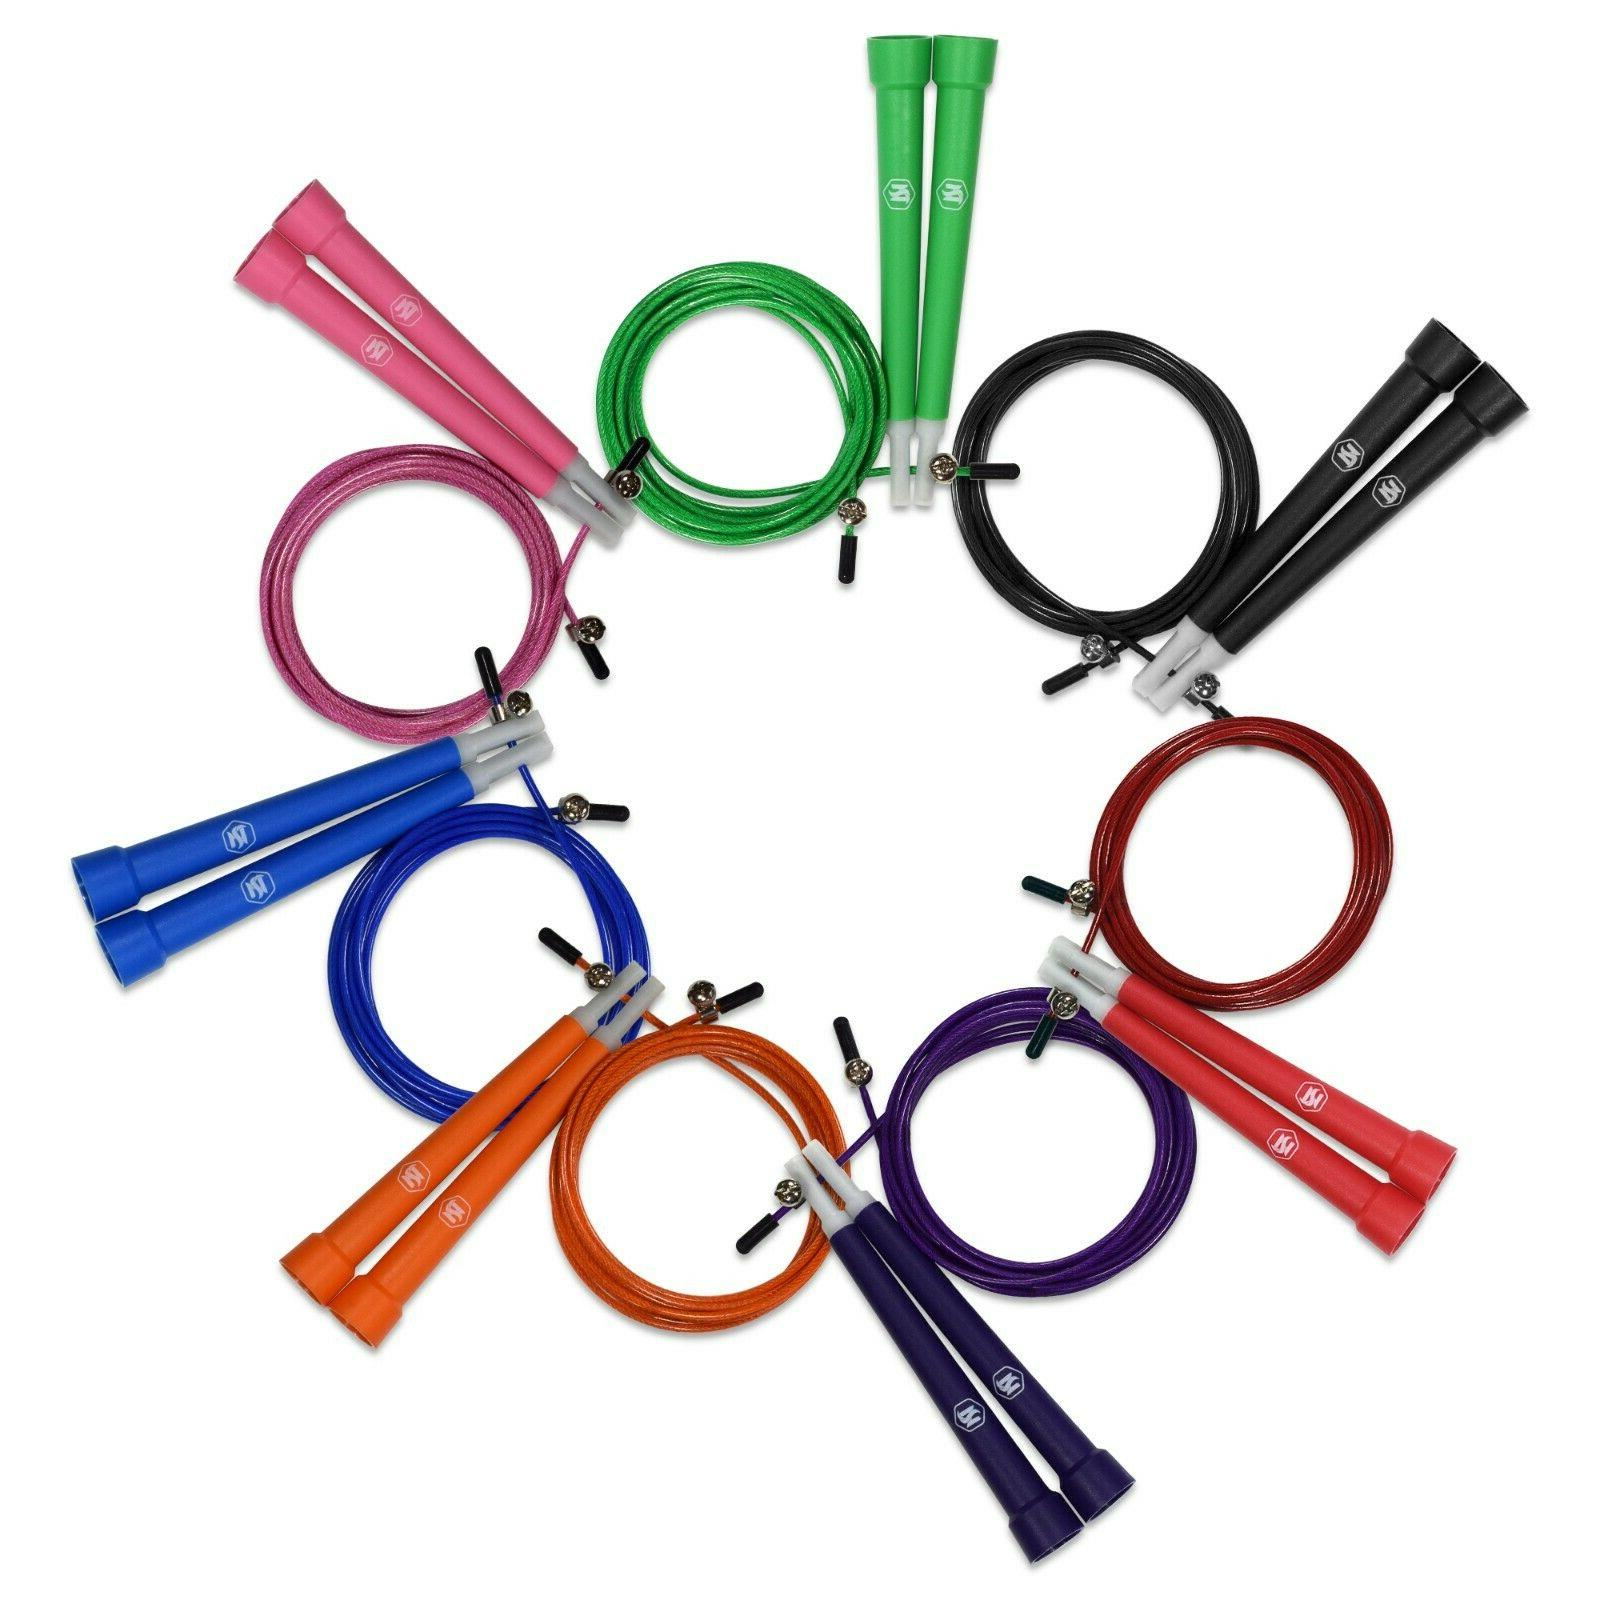 speed jump rope fully adjustable with carrying